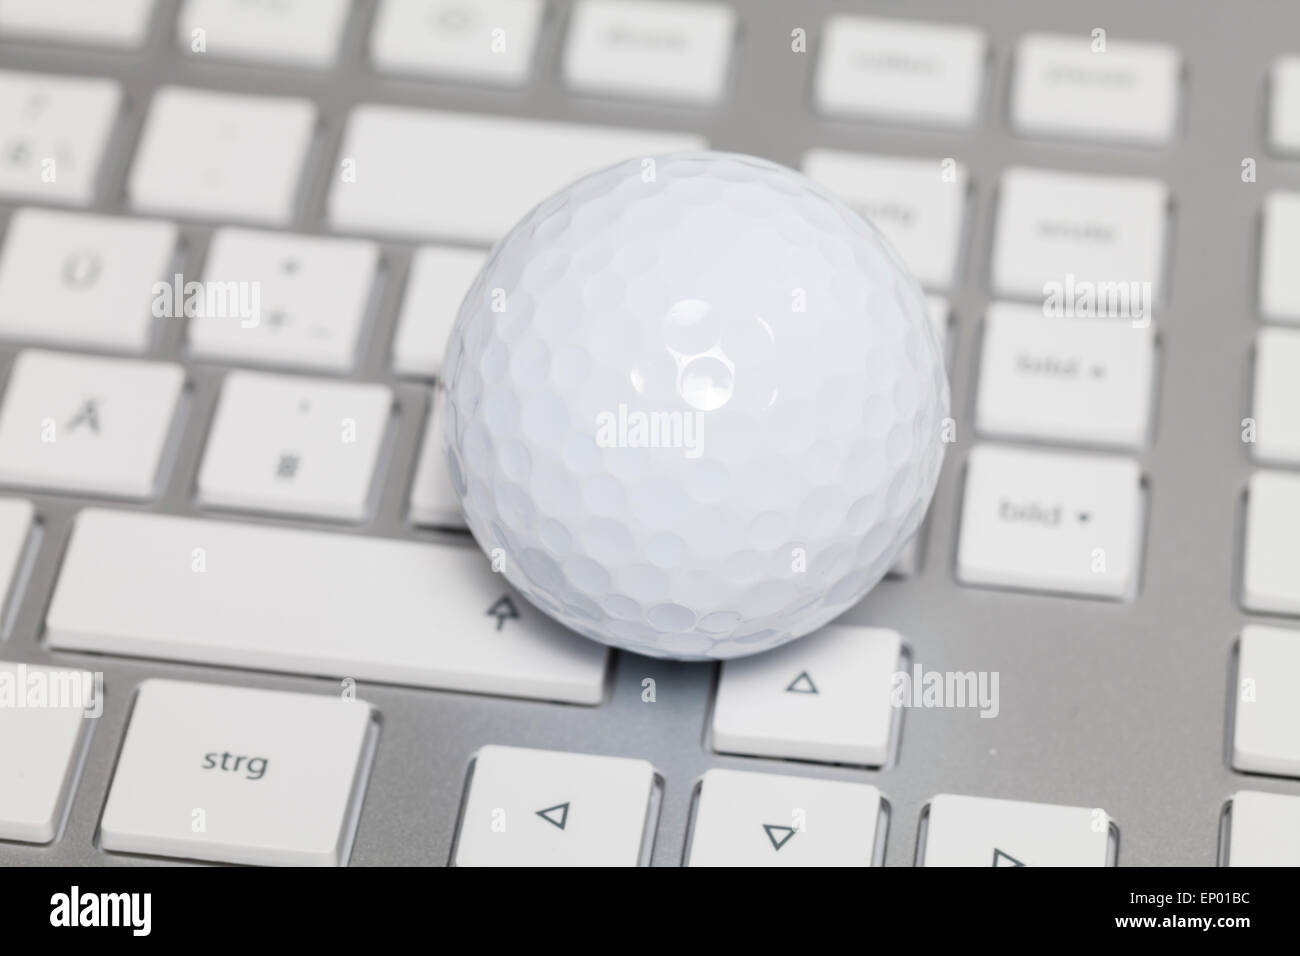 Golf ball on keyboard - Stock Image